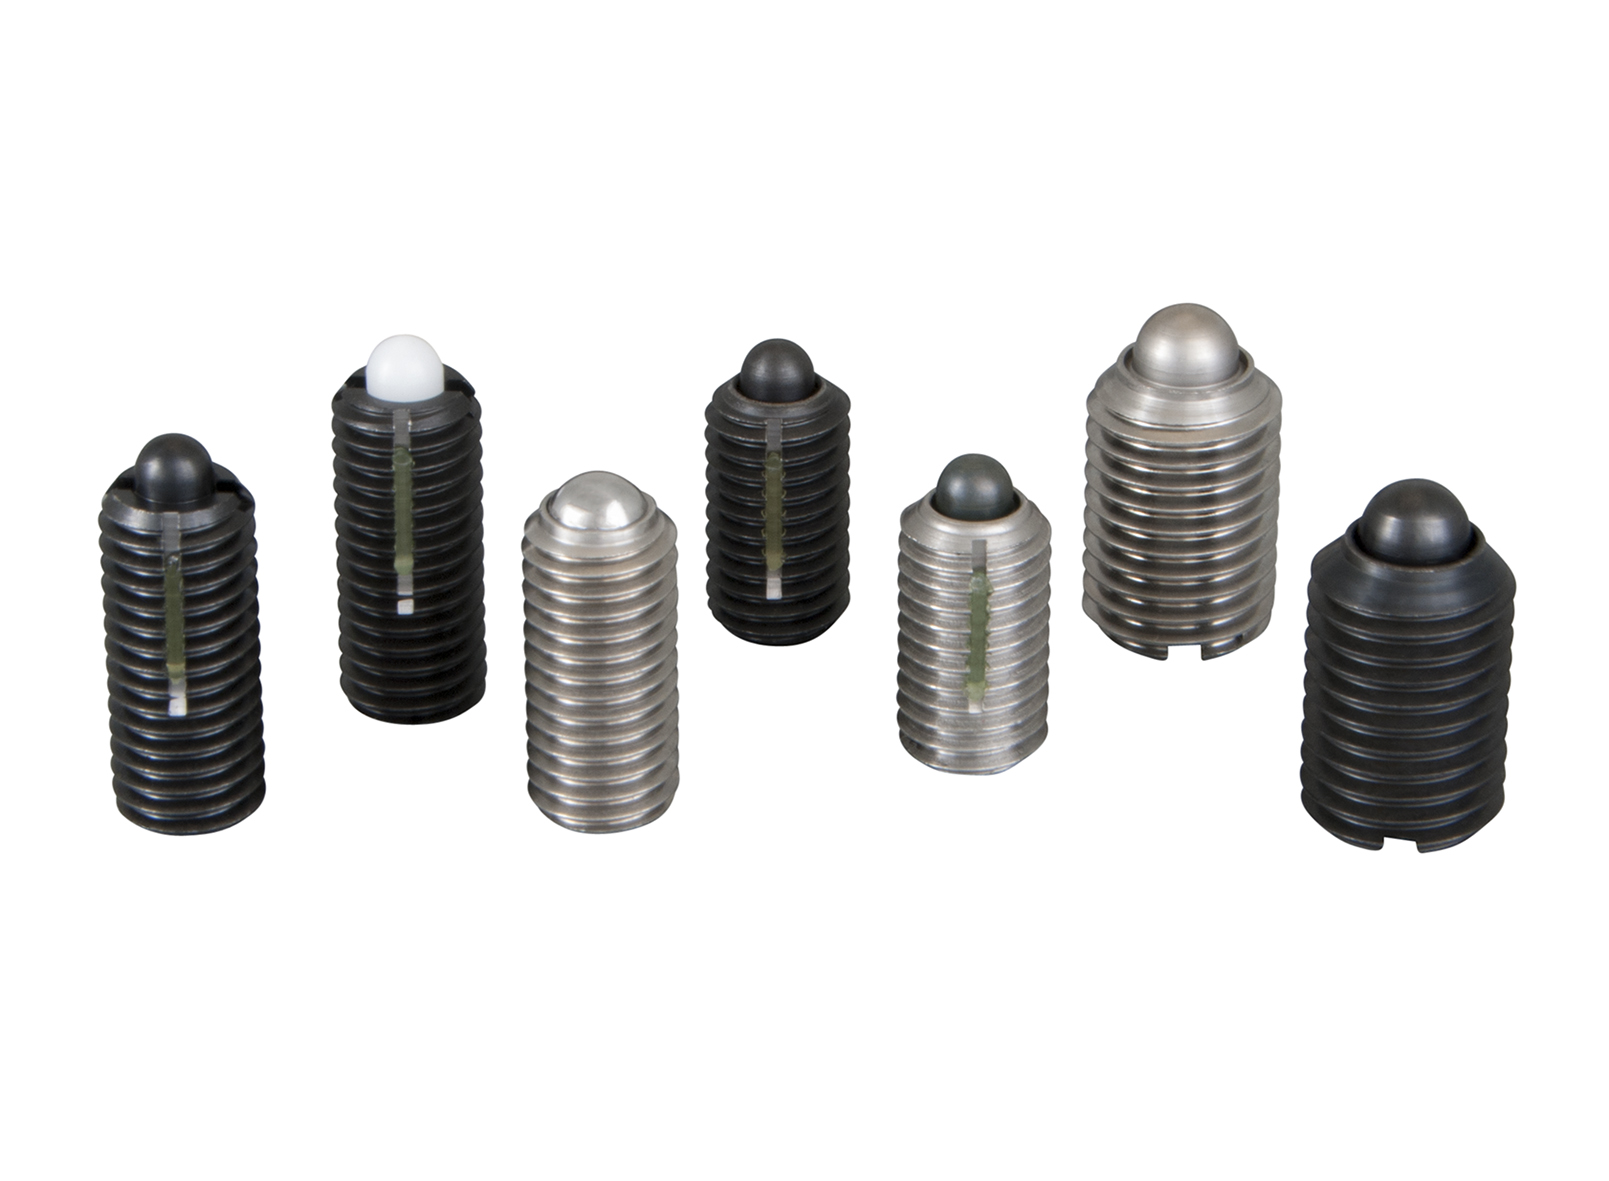 Even more index plunger options offered by WDS